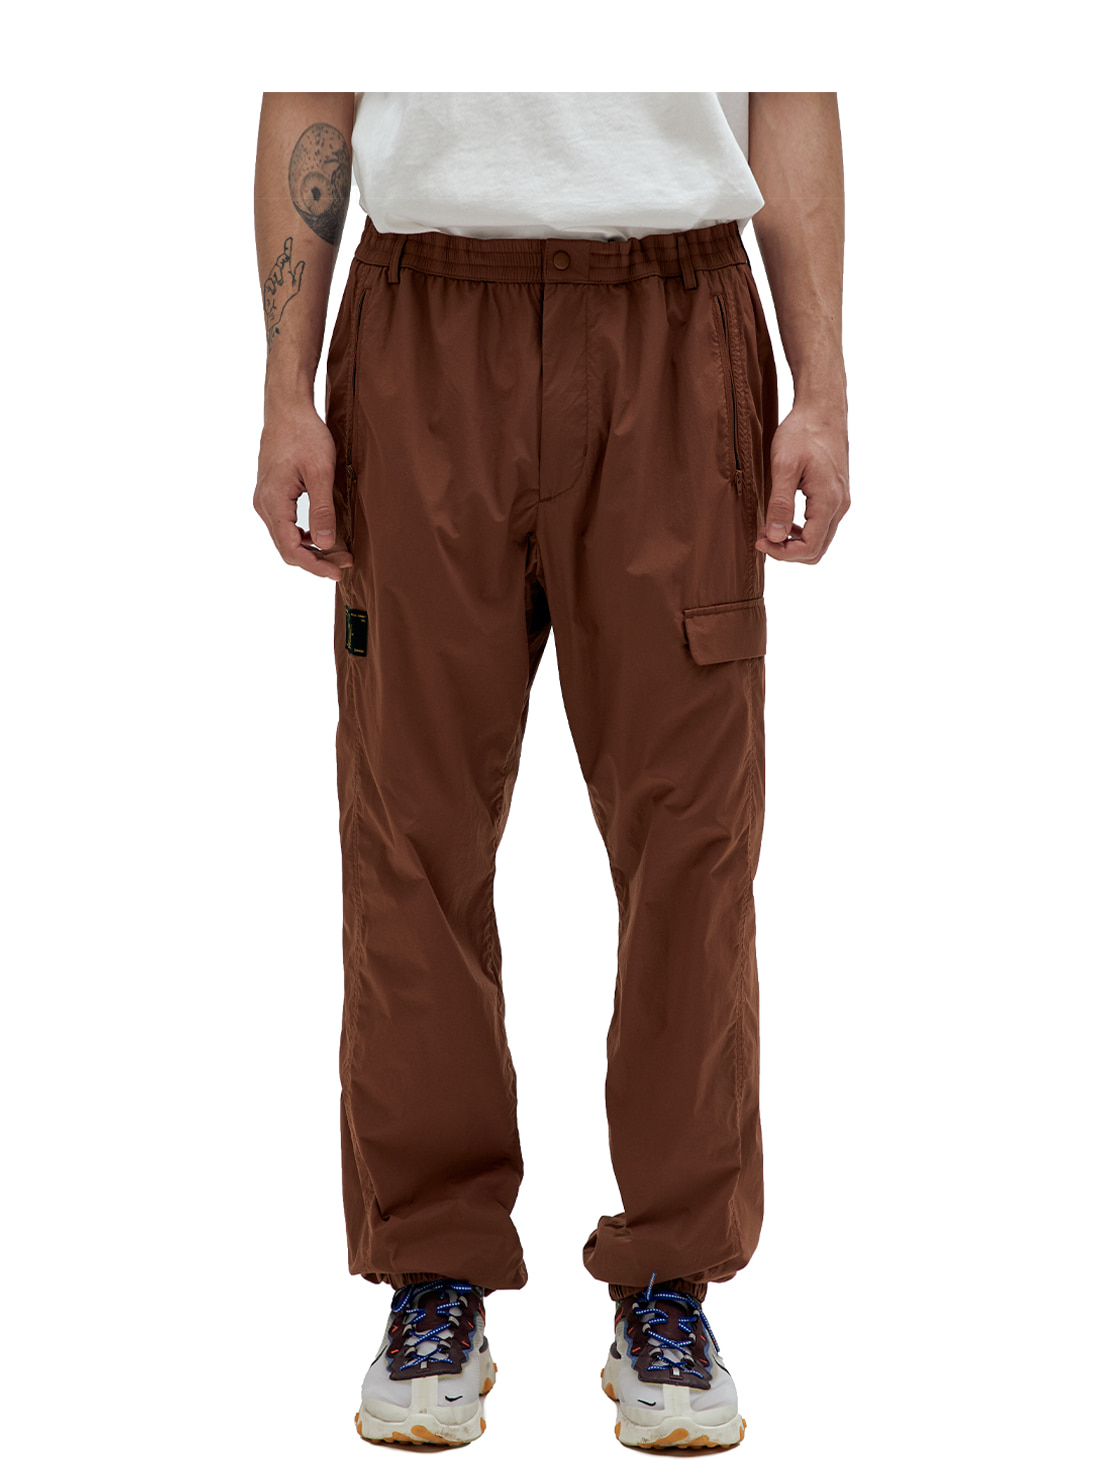 SSFC OFFICIAL CLUB TROUSERS - BROWN